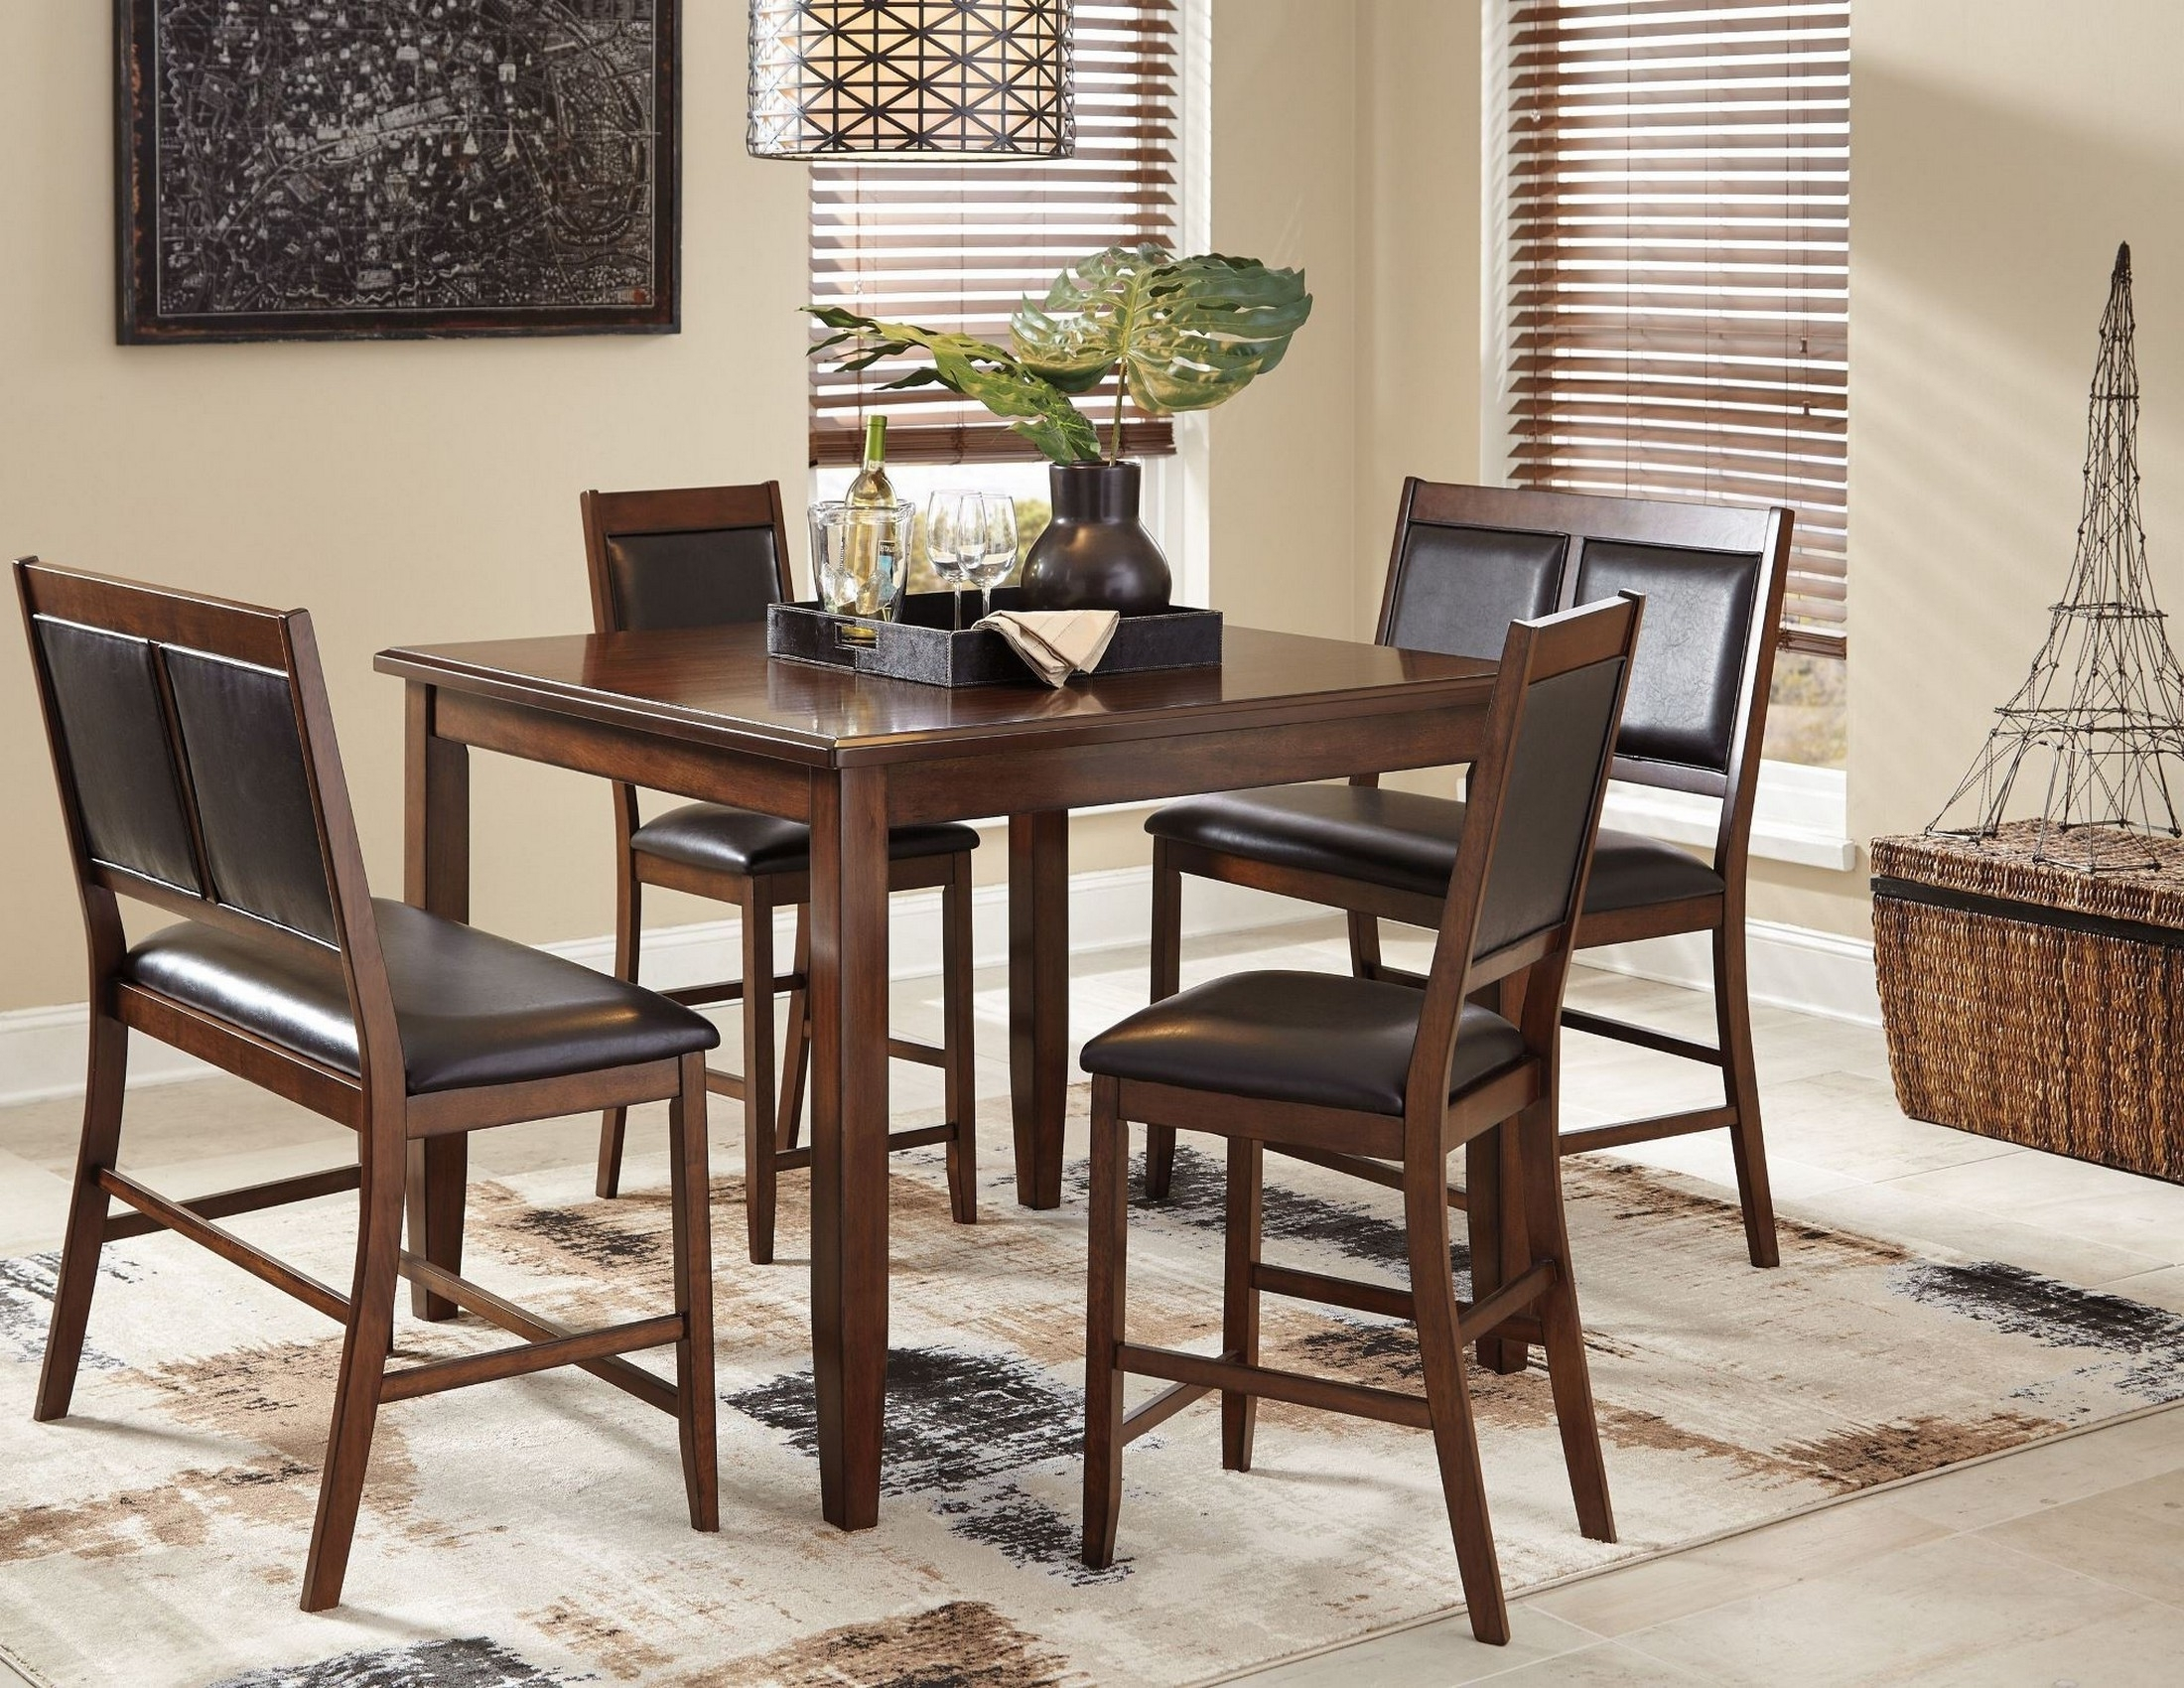 Meredy Brown 5 Piece Counter Height Dining Room Set From Ashley Within Most Recently Released Hyland 5 Piece Counter Sets With Bench (View 23 of 25)